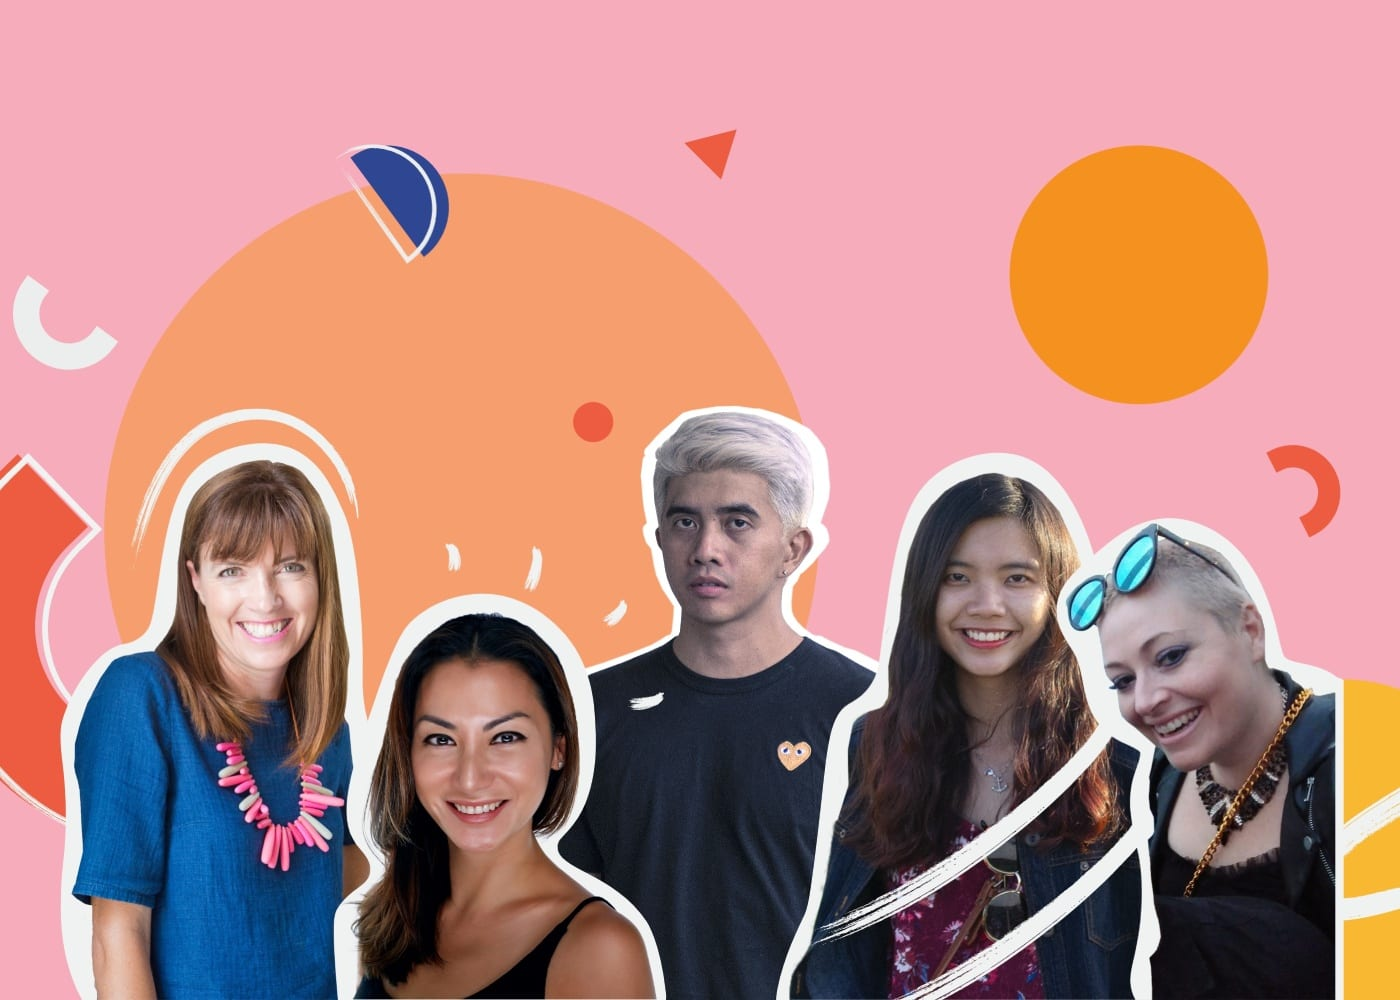 Introducing Digital Collective: The new content marketing agency in our Honeycombers family